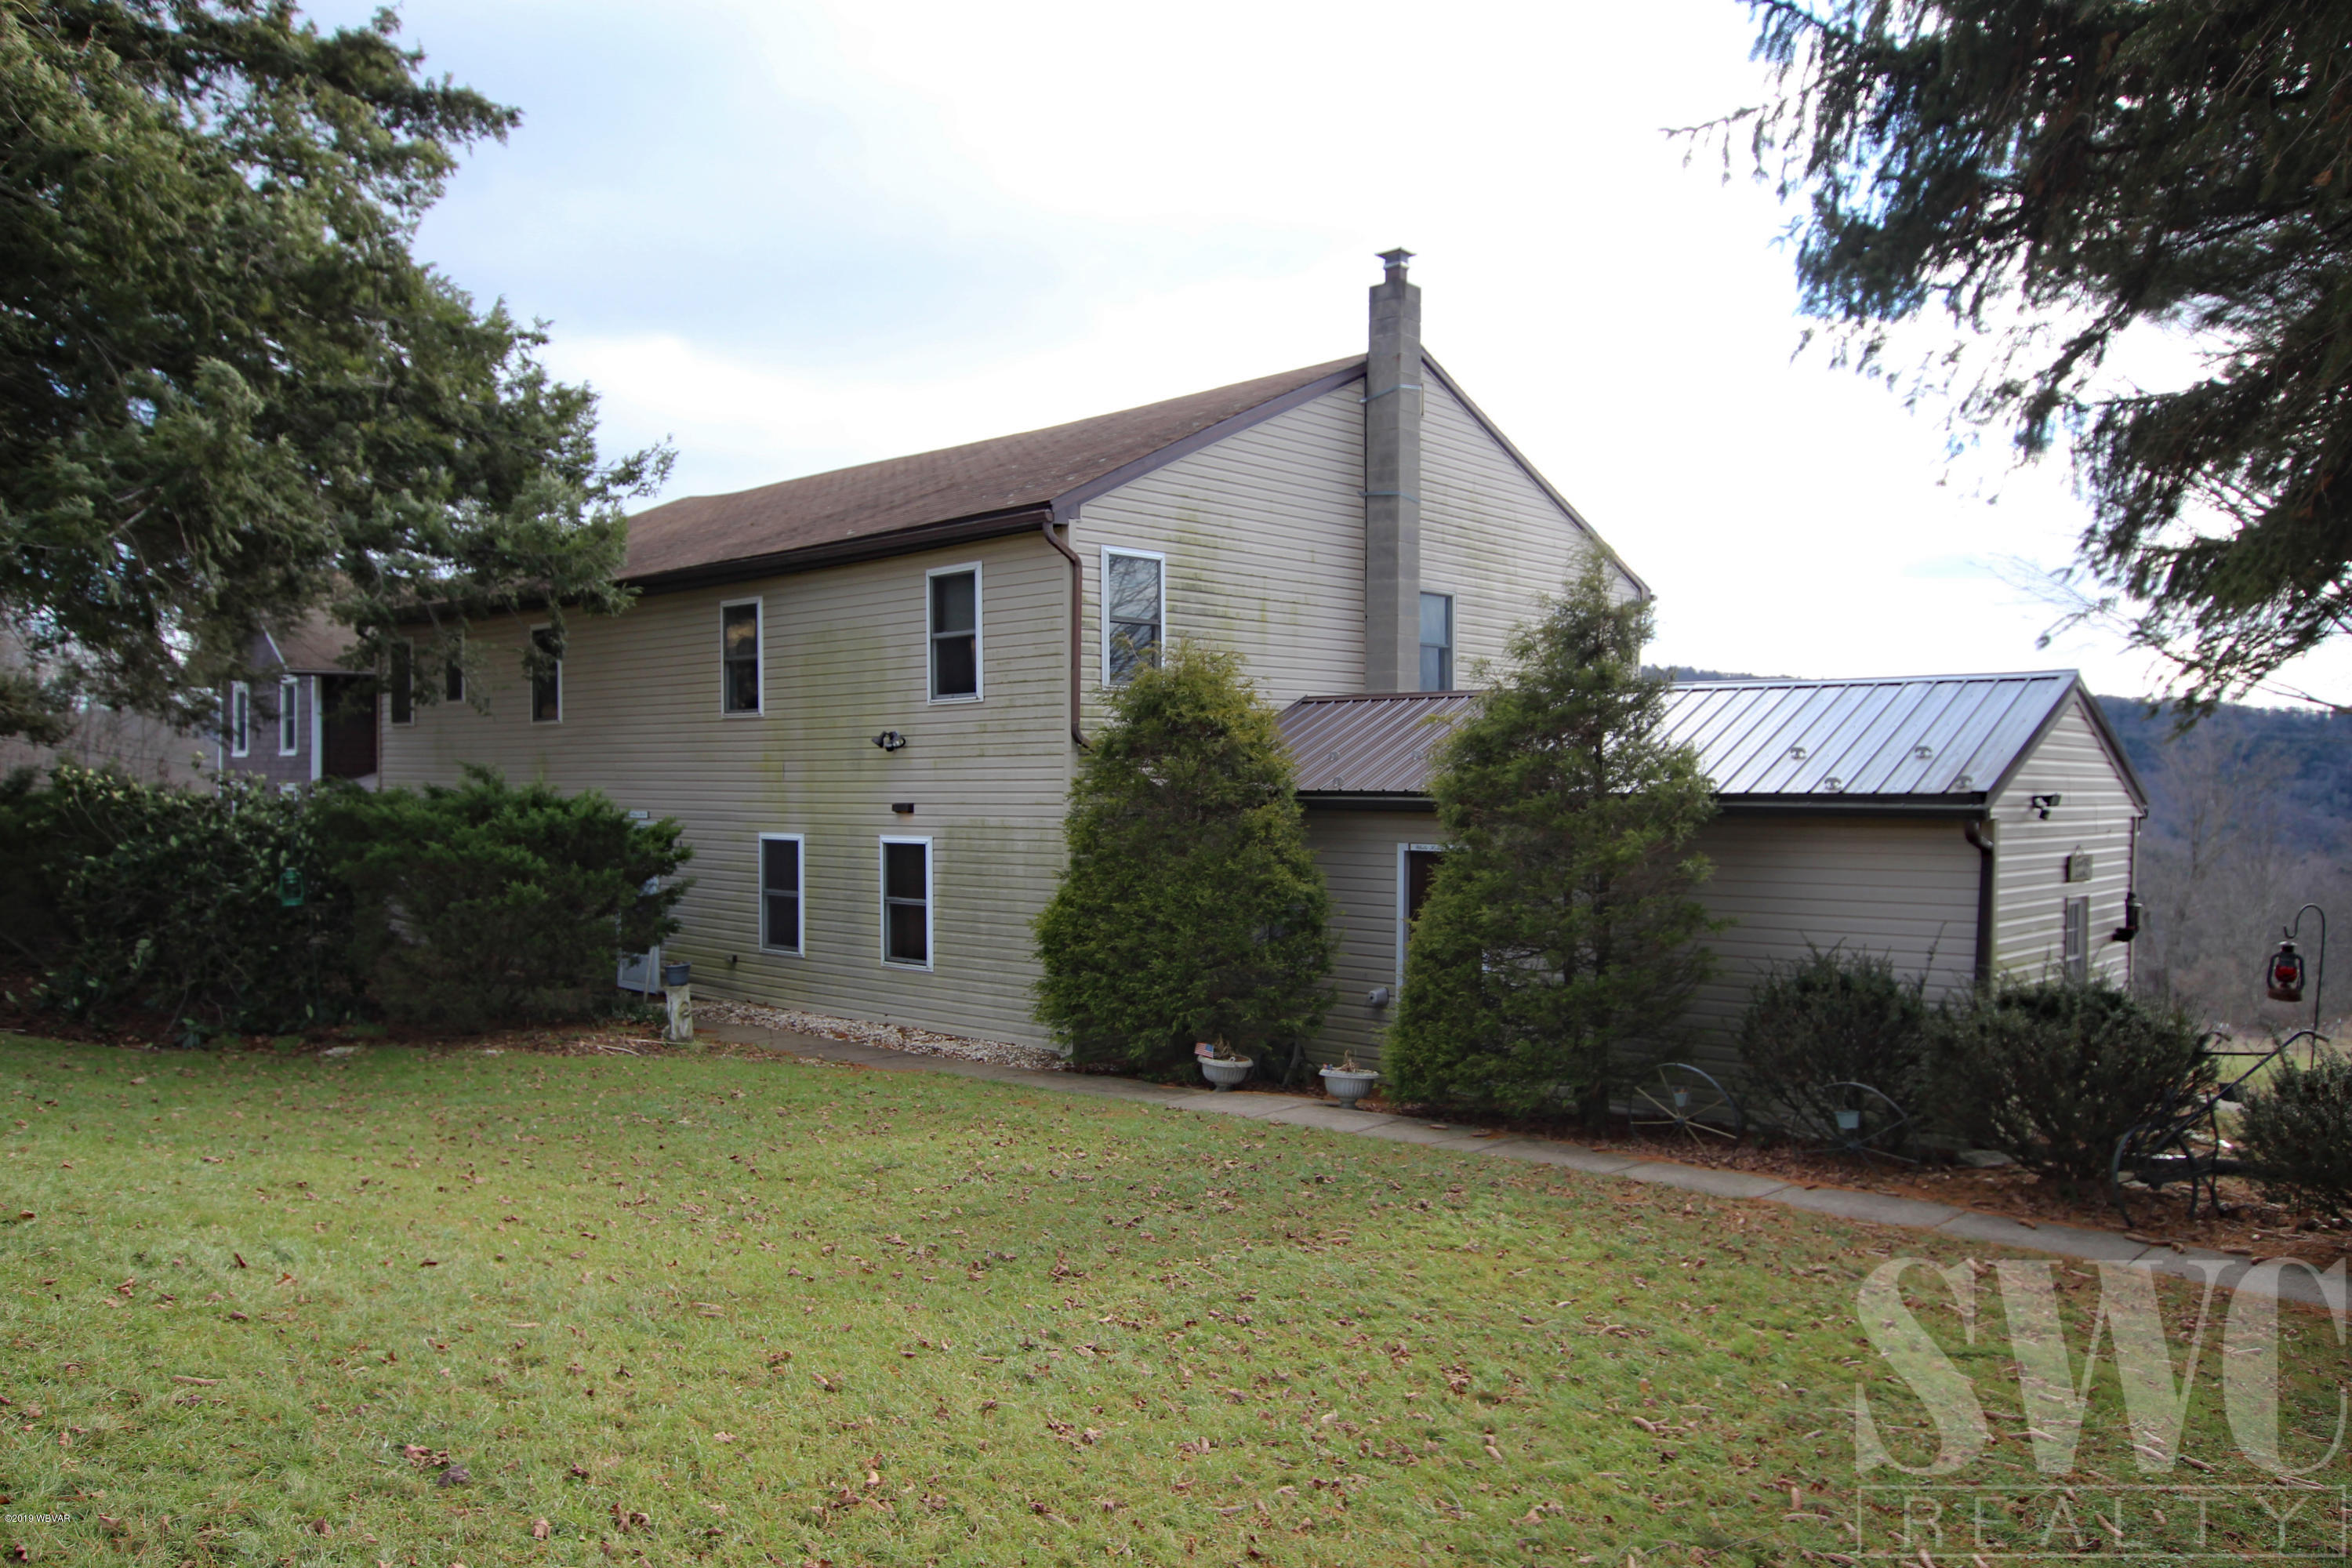 472 TALL MAPLE ROAD,Forksville,PA 18616,10 Bedrooms Bedrooms,5 BathroomsBathrooms,Residential,TALL MAPLE,WB-86176